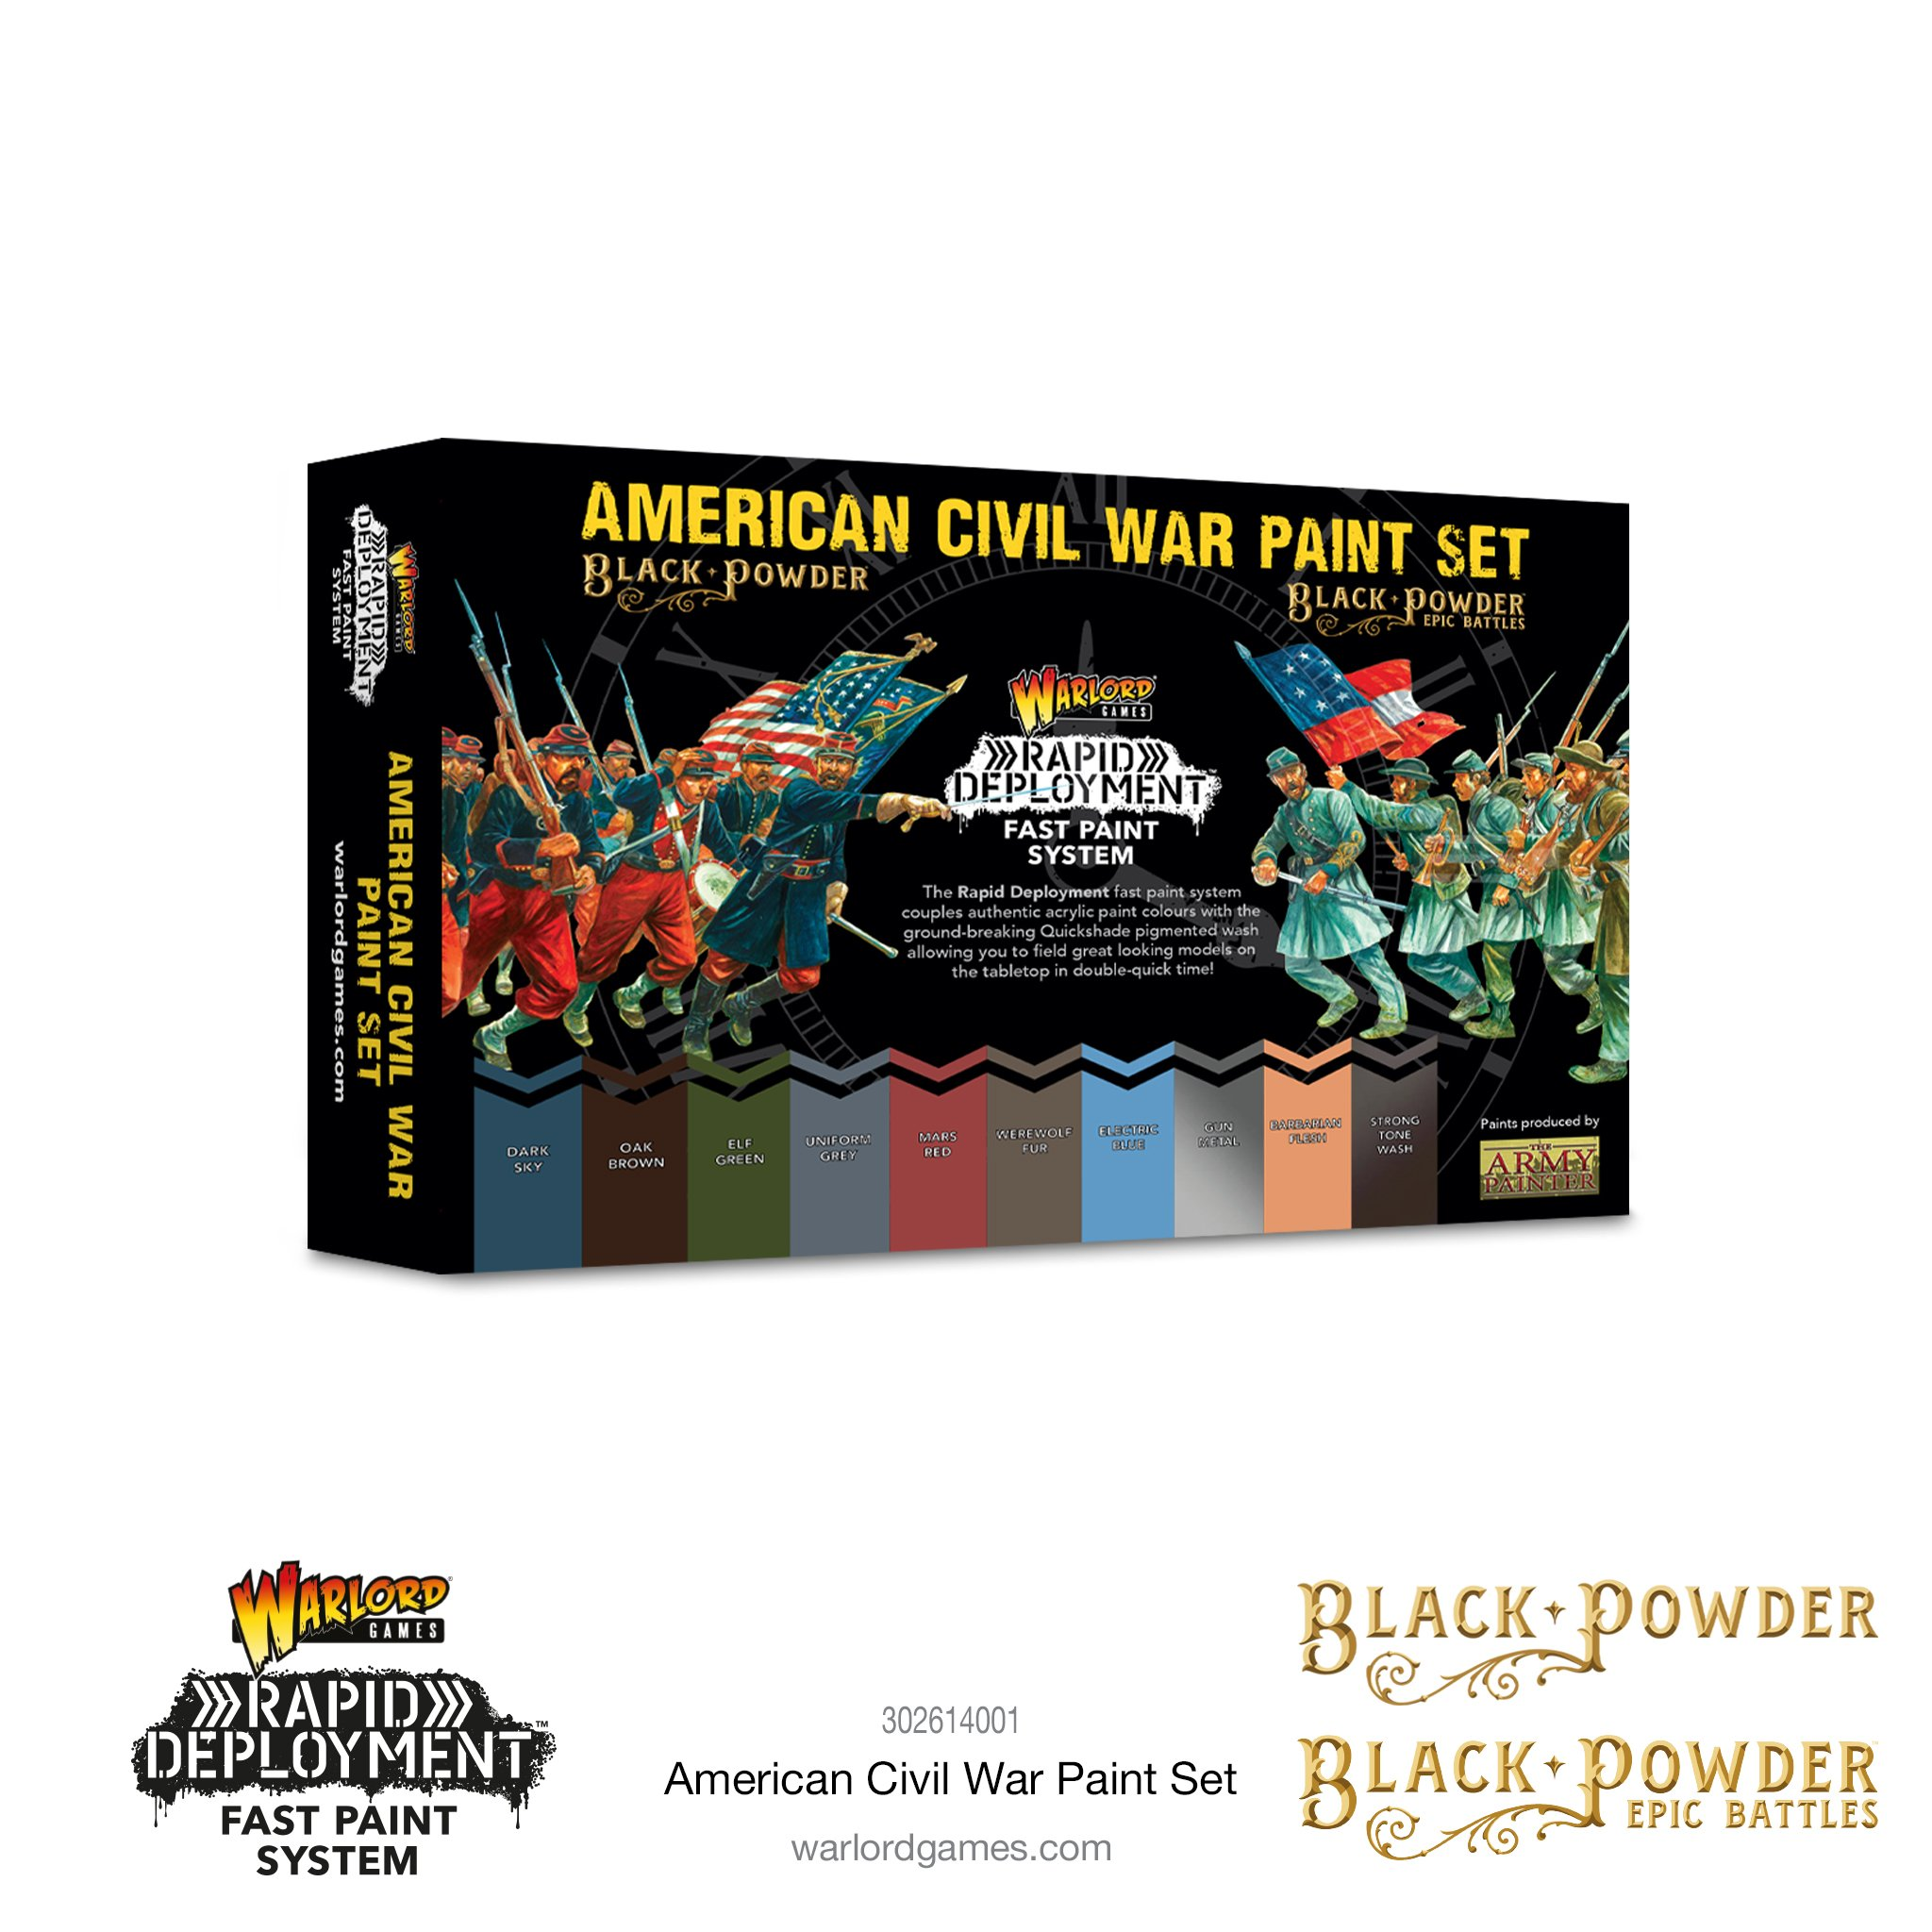 American Civil War Paint Set - Warlord Games